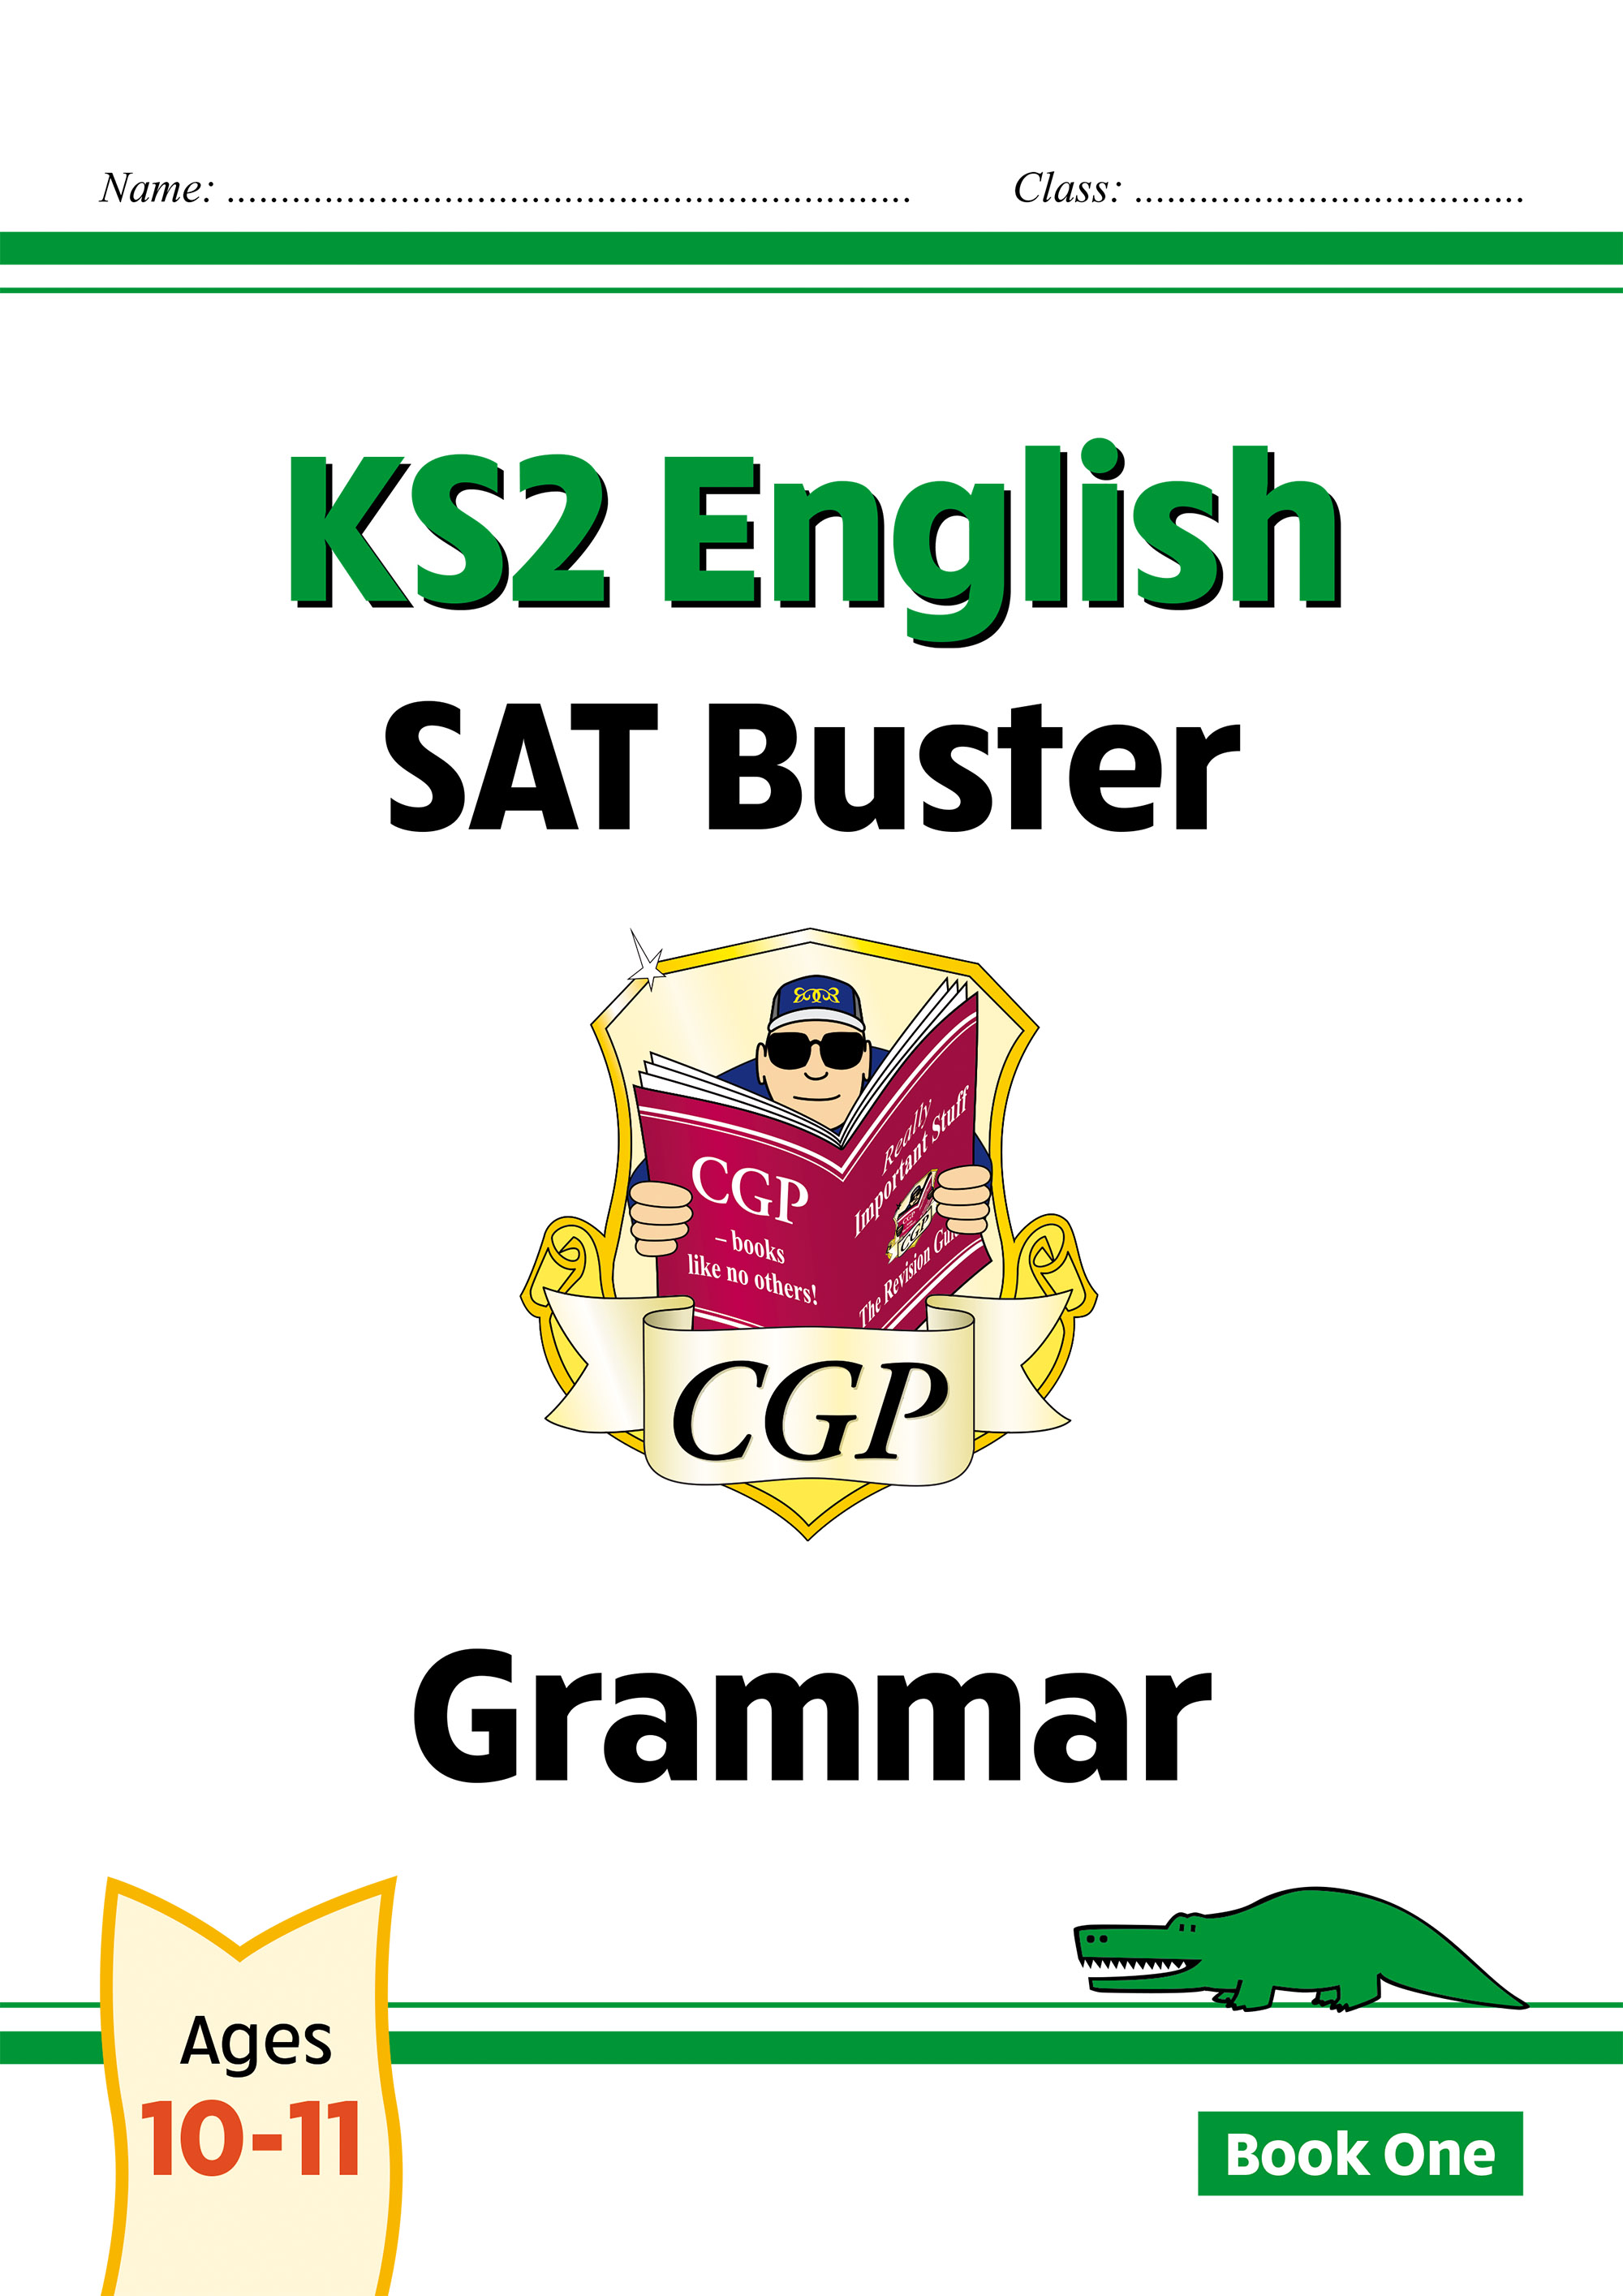 E6G23DK - New KS2 English SAT Buster: Grammar - Book 1 (for the 2021 tests)